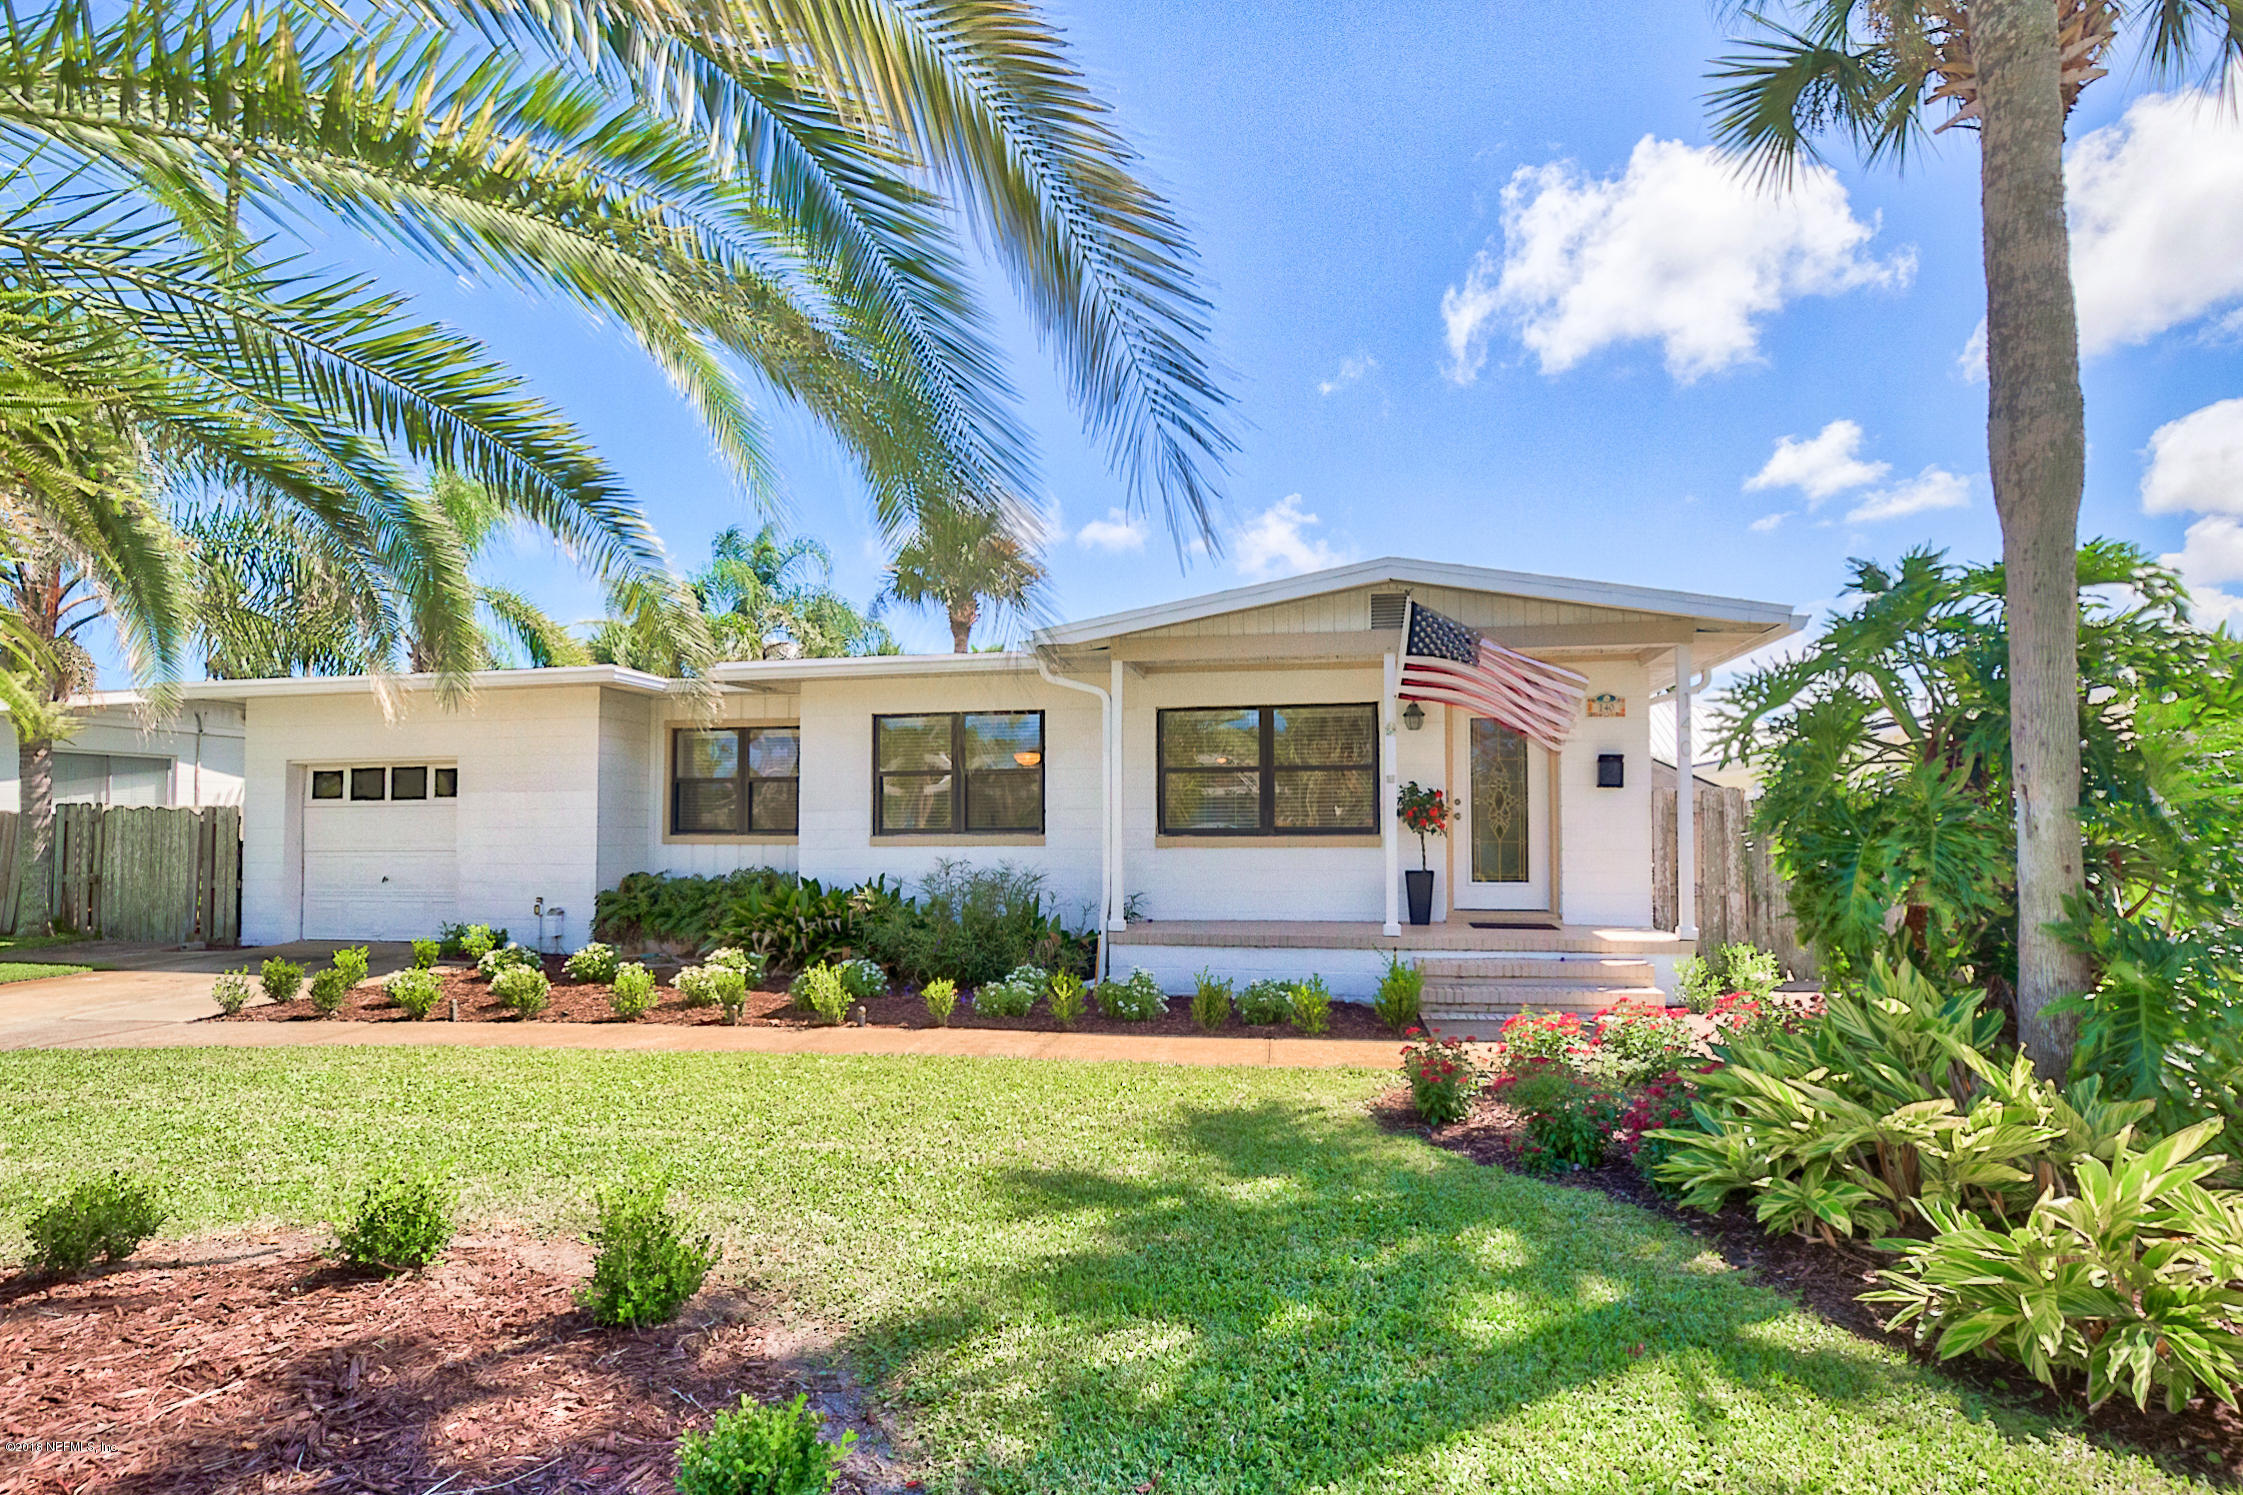 140 30TH, JACKSONVILLE BEACH, FLORIDA 32250, 4 Bedrooms Bedrooms, ,2 BathroomsBathrooms,Residential - single family,For sale,30TH,967453